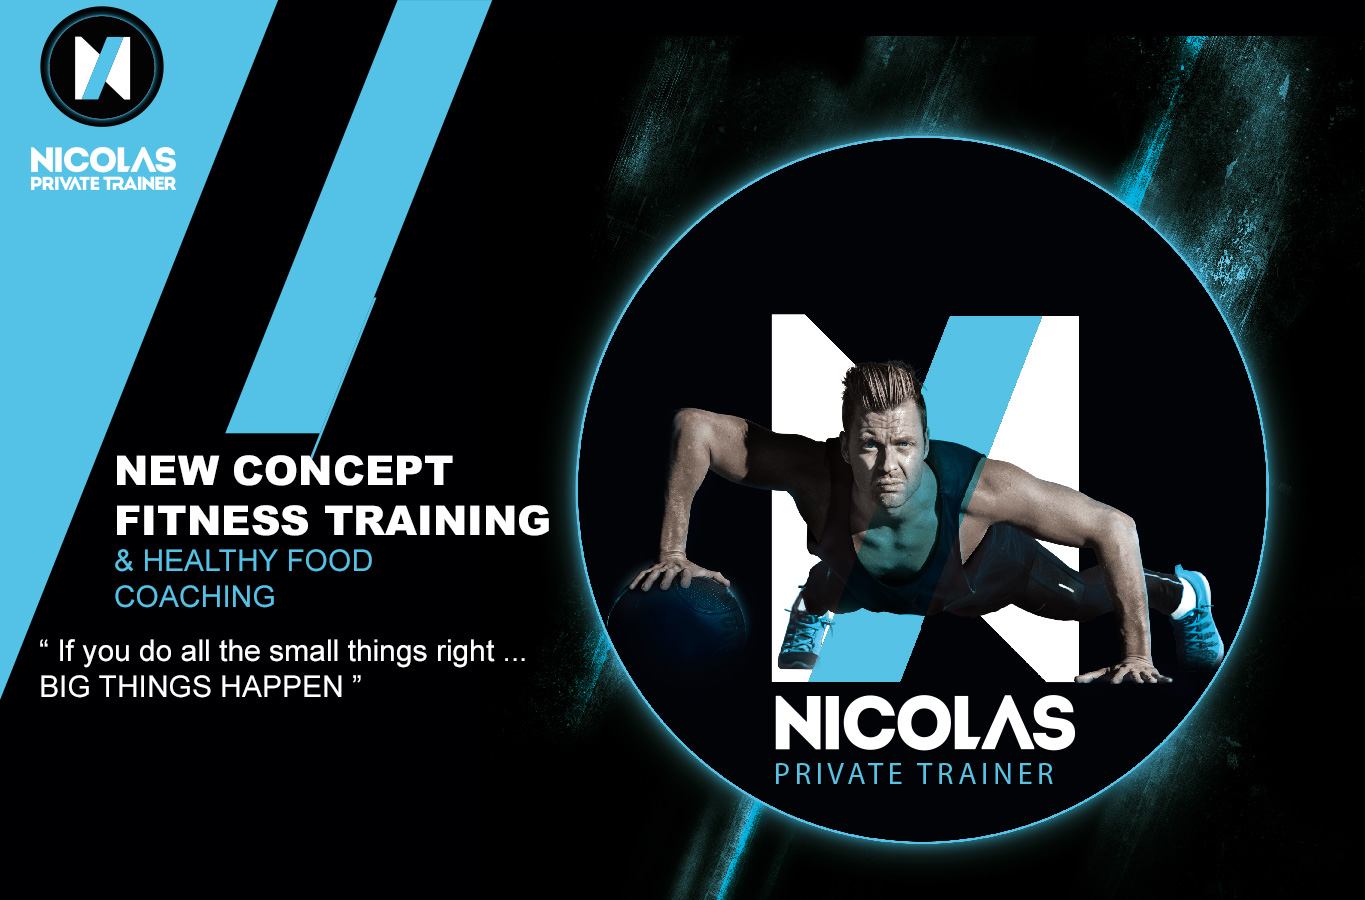 New Concept Fitness Training